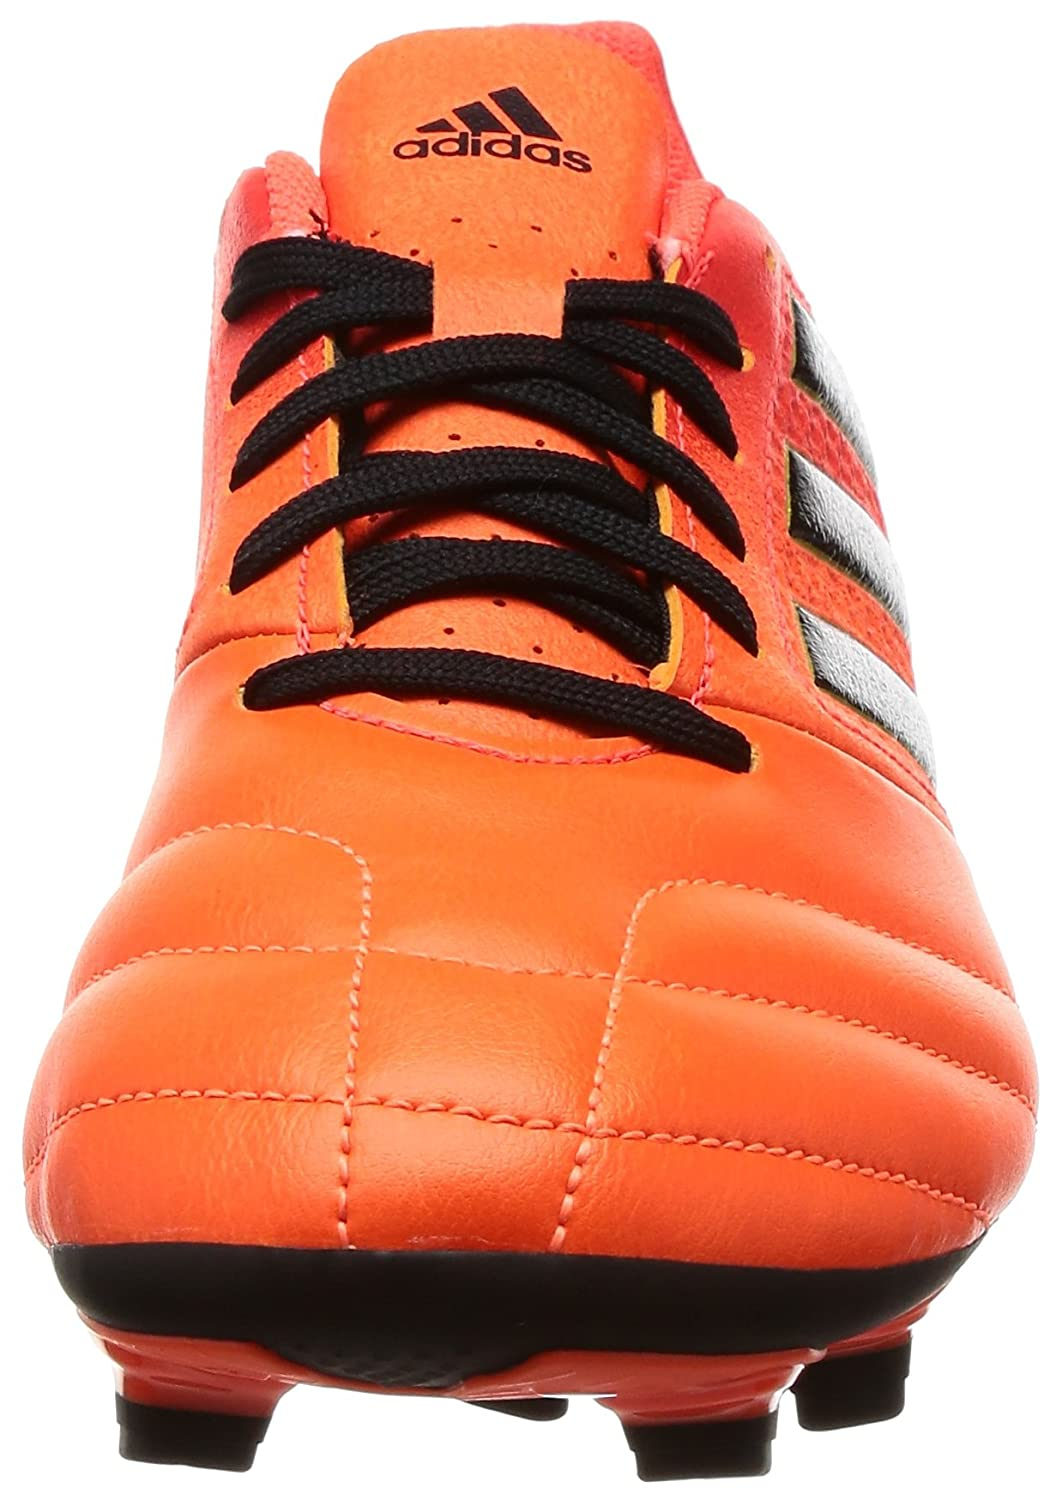 e79ce6712447 Adidas Men s Ace 17.4 FxG Sorang Cblack Solred Football Boots - 8 UK India  (42 EU) (S77094)  Buy Online at Low Prices in India - Amazon.in